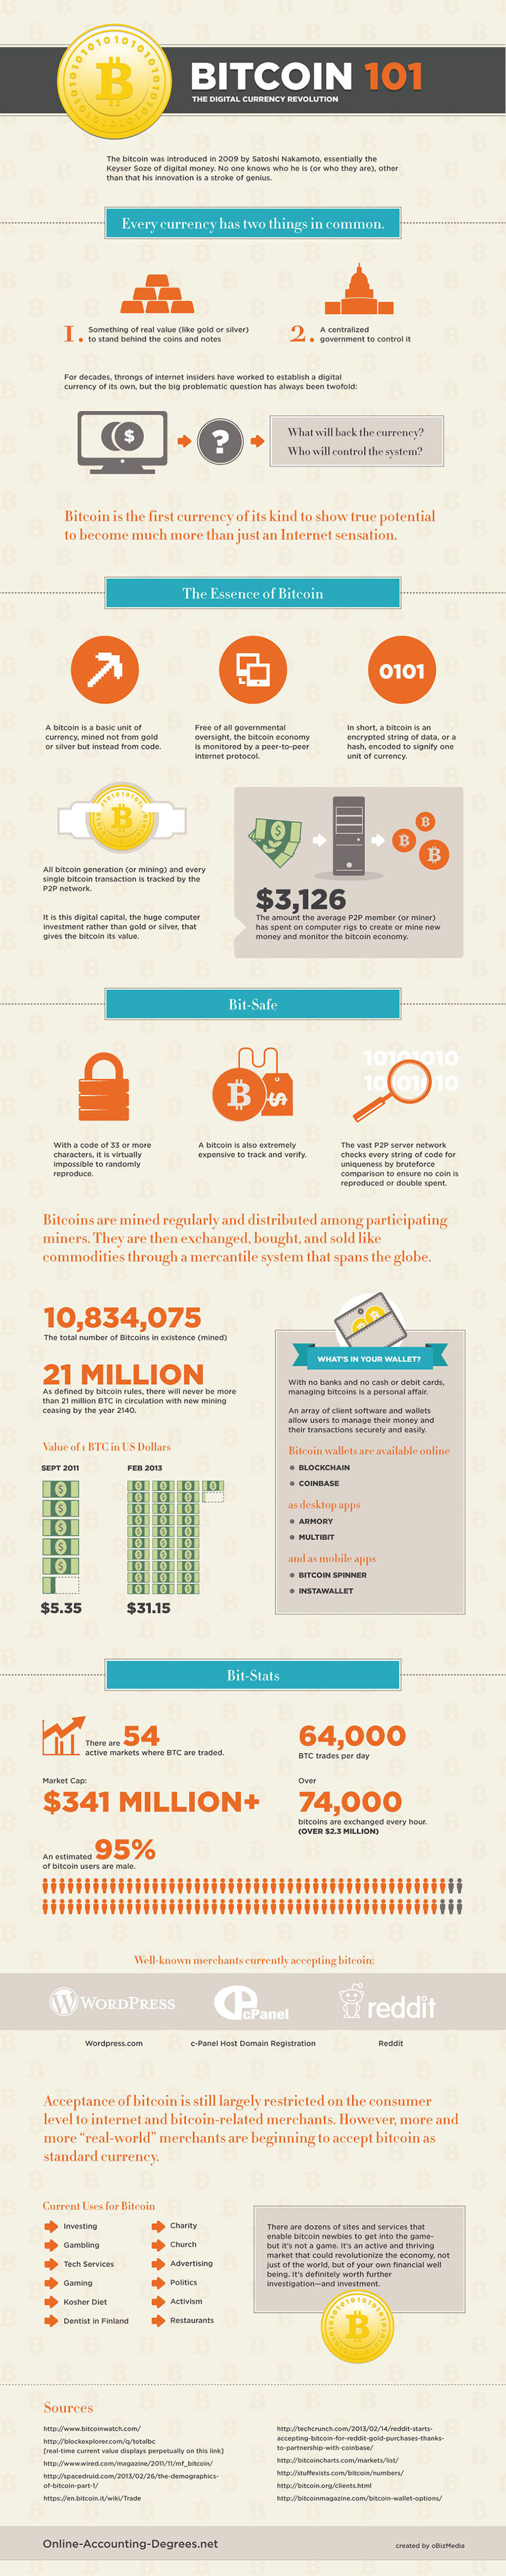 bitcoin-101-cheatsheet-infographic-2013